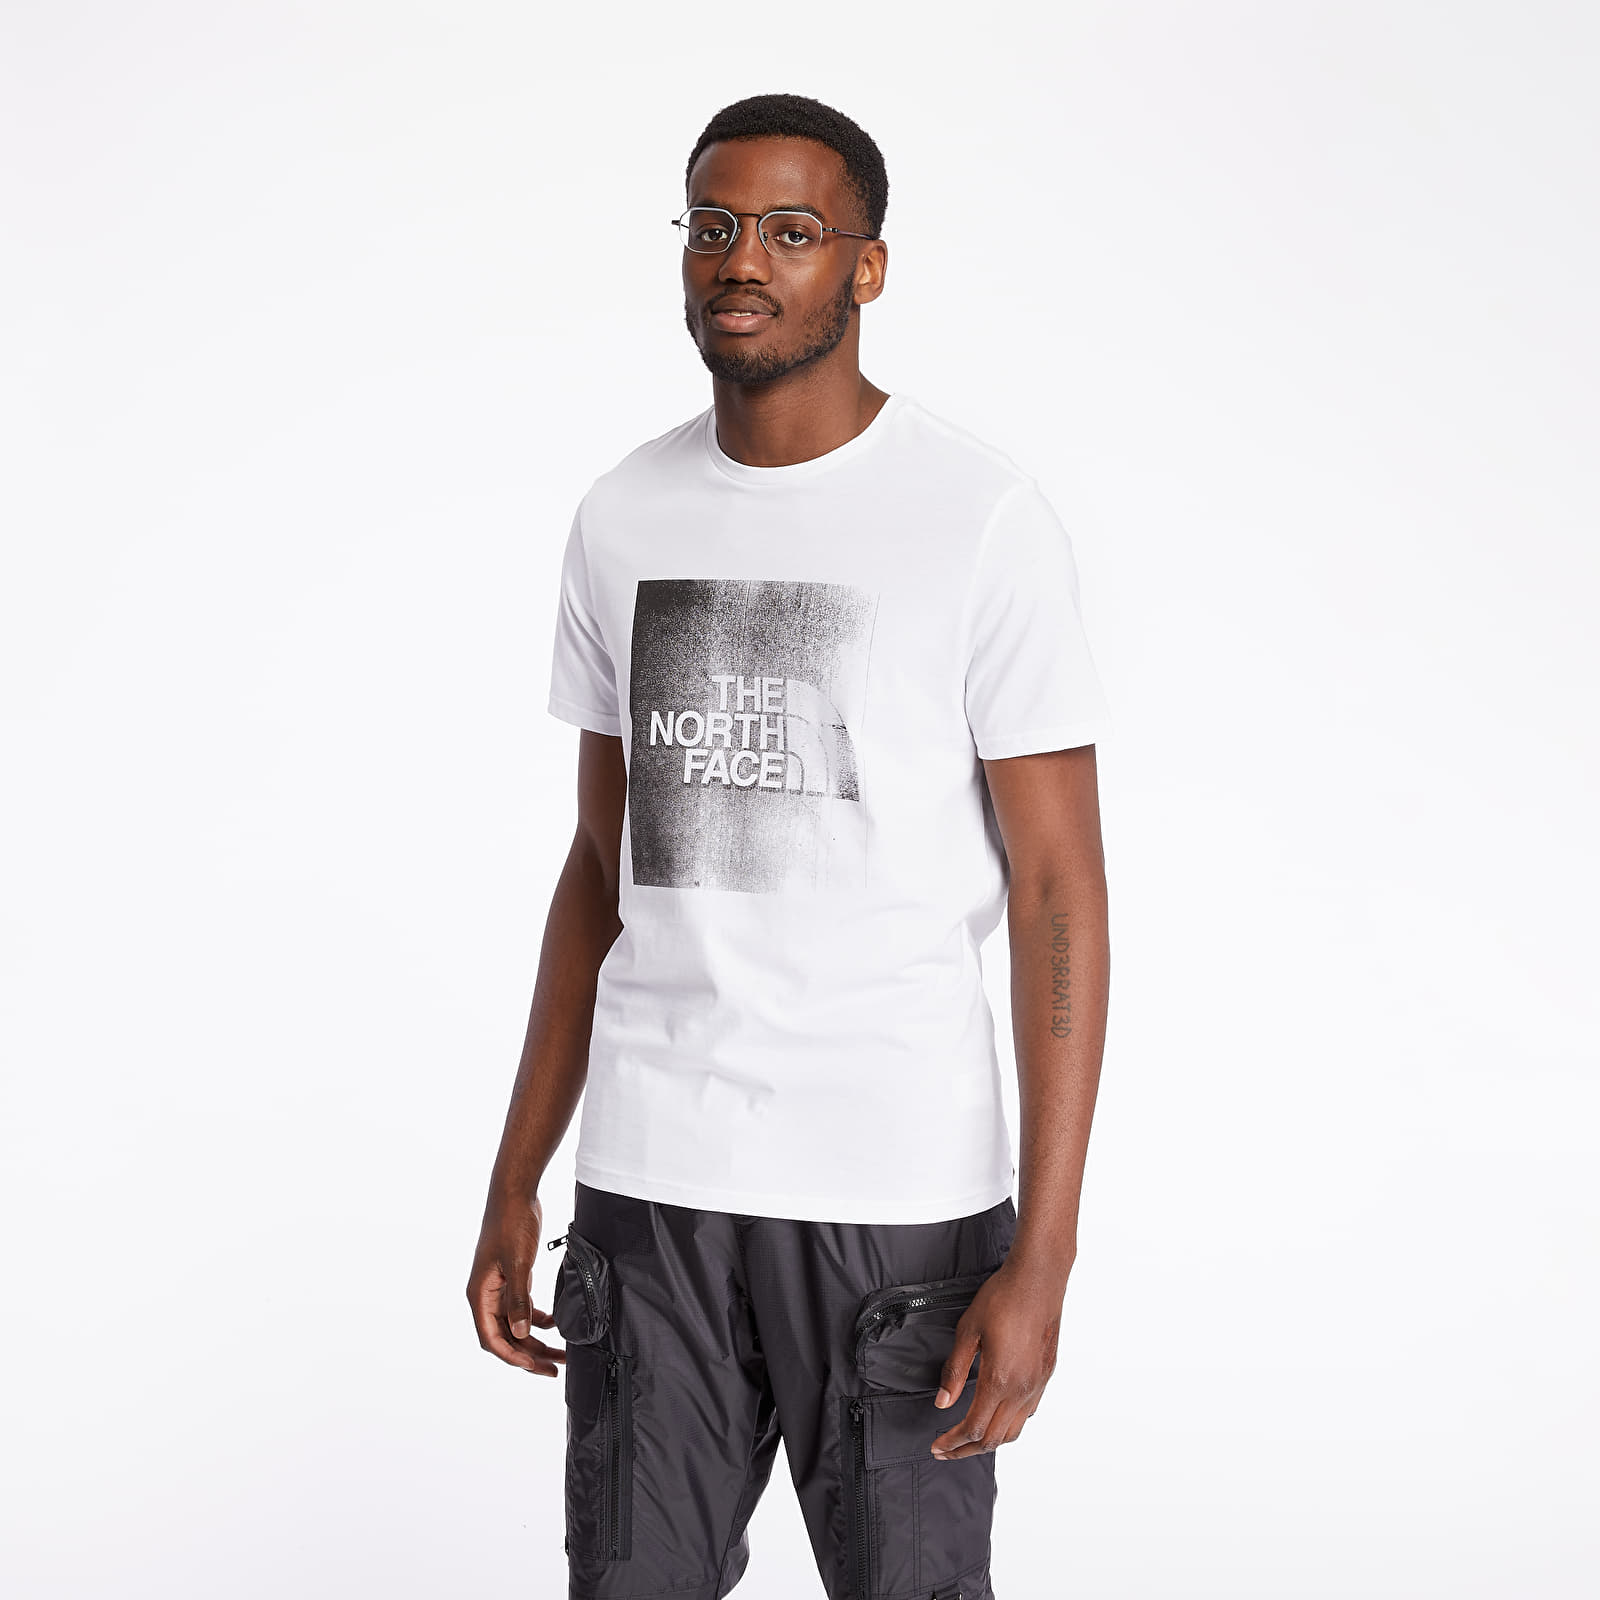 The North Face Xrx Tee